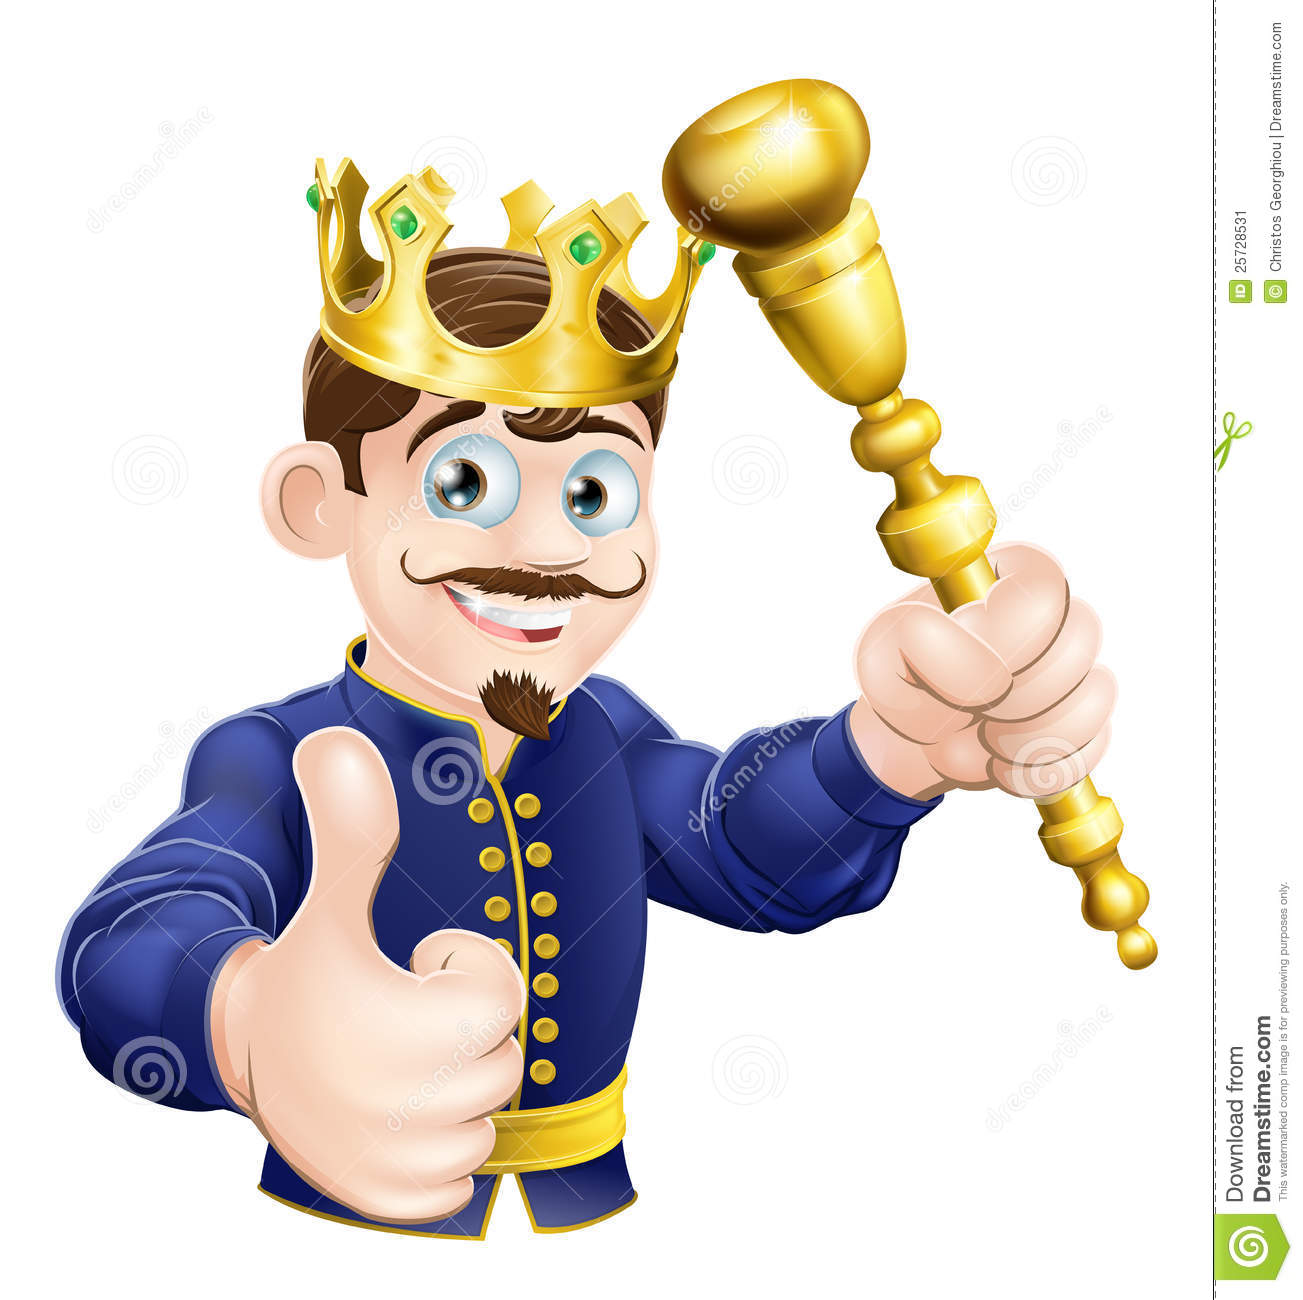 Illustration of a happy cartoon king holding a gold sceptre.